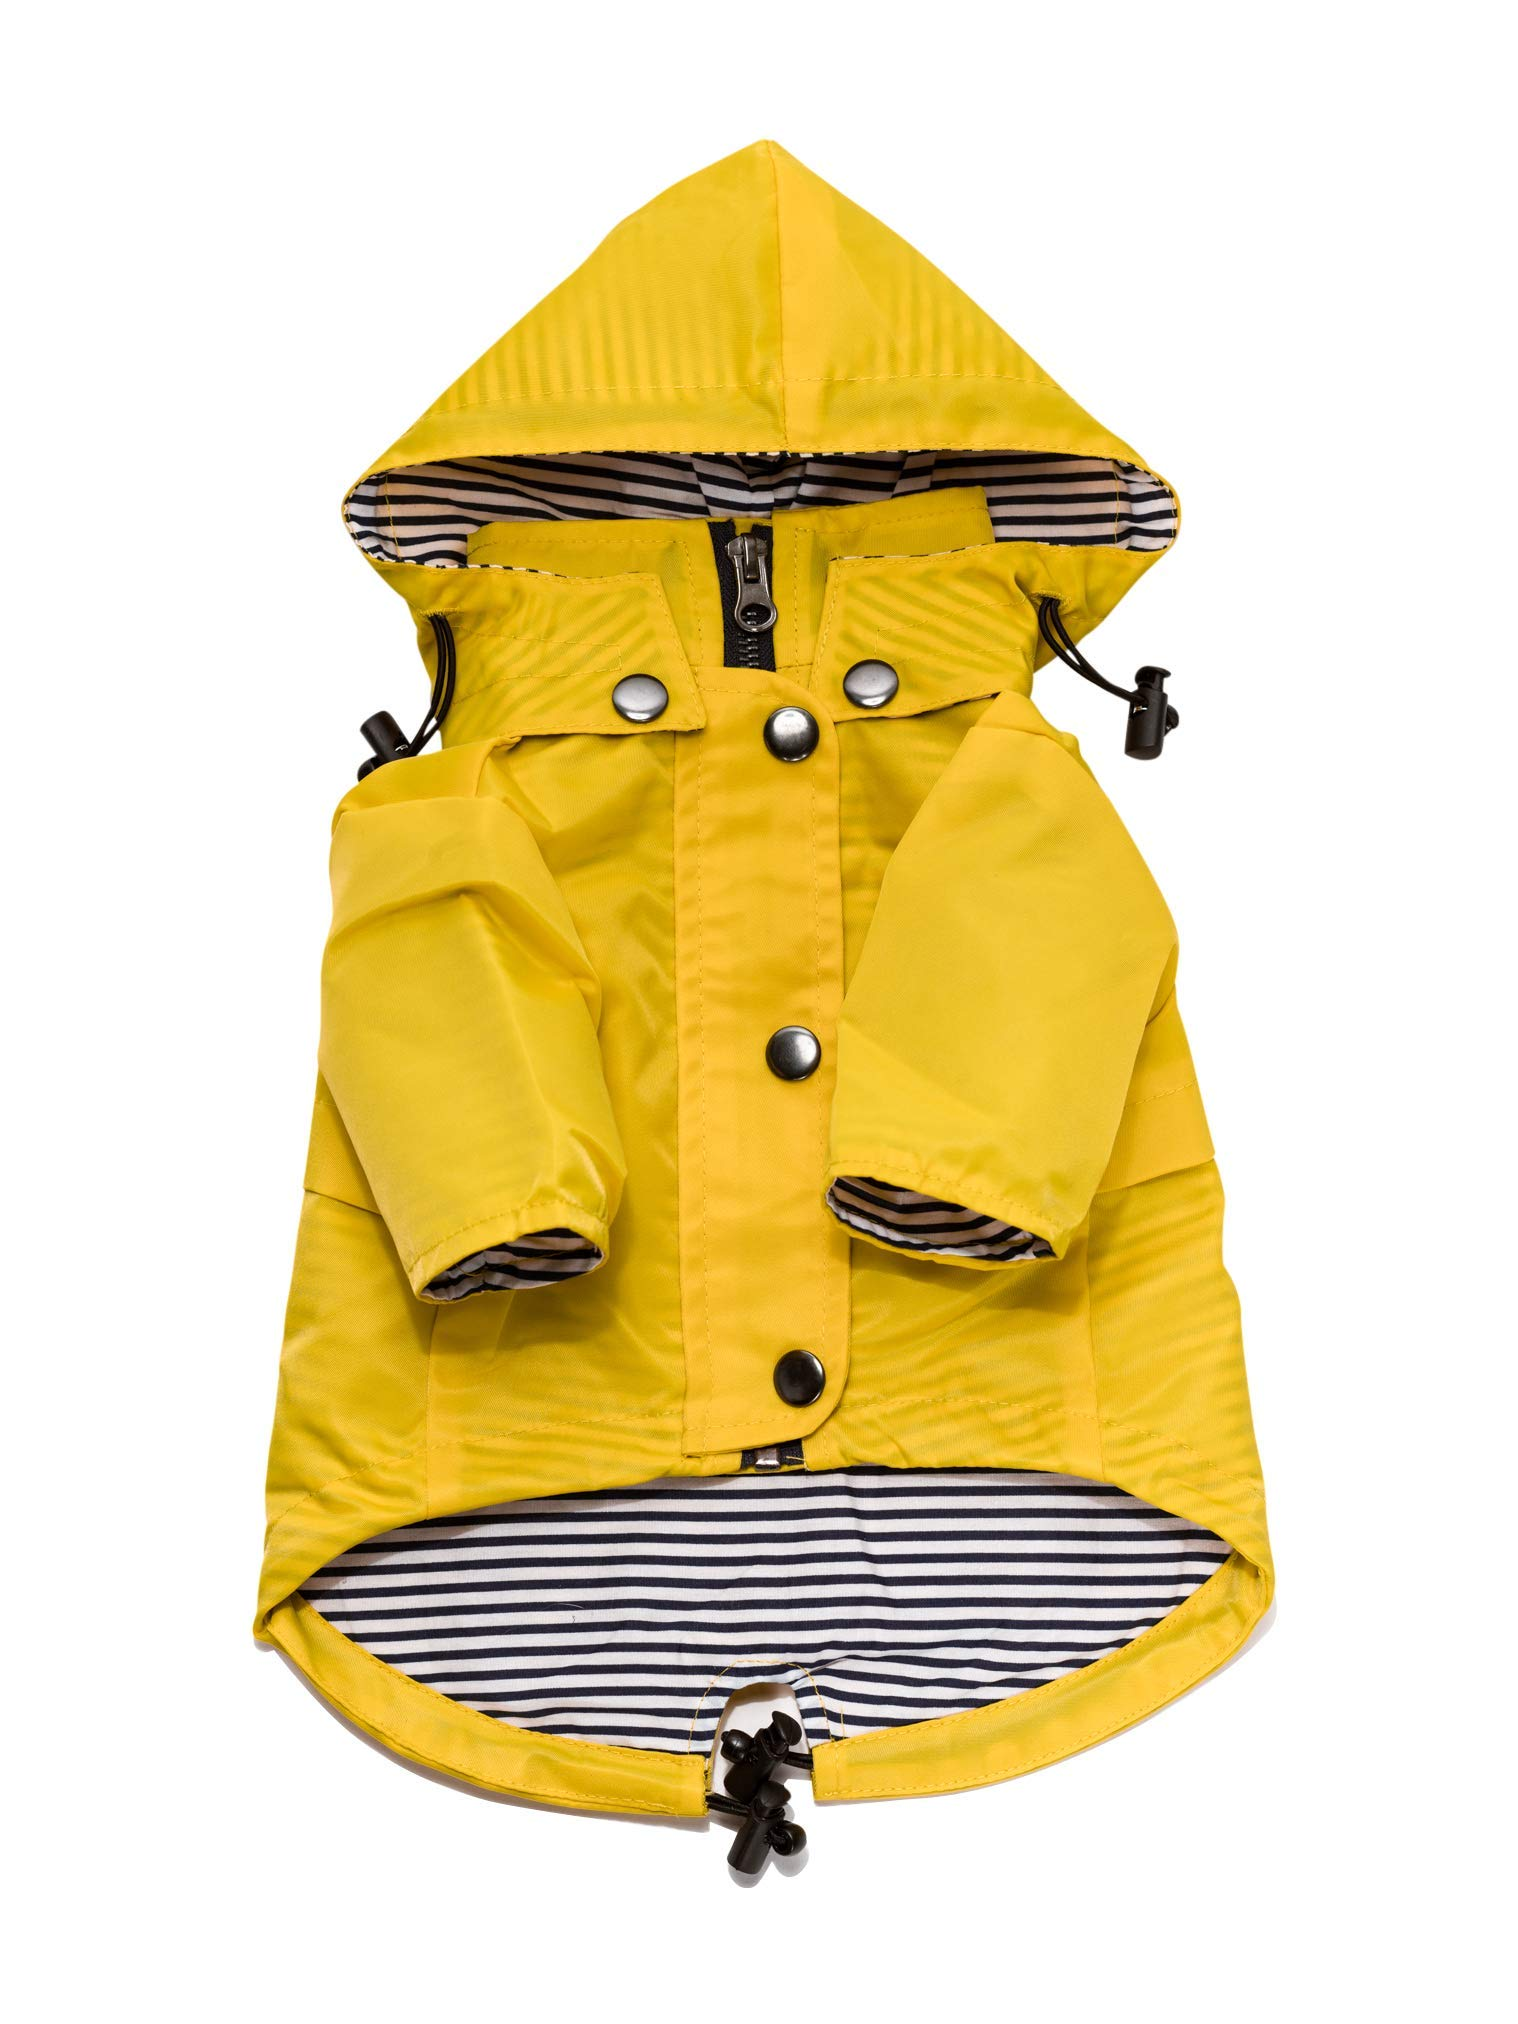 Yellow Zip Up Dog Raincoat with Reflective Buttons, Pockets, Rain/Water Resistant, Adjustable Drawstring, Removable Hood - Size XS to XXL Available - Stylish Premium Dog Raincoats by Ellie (XXL)